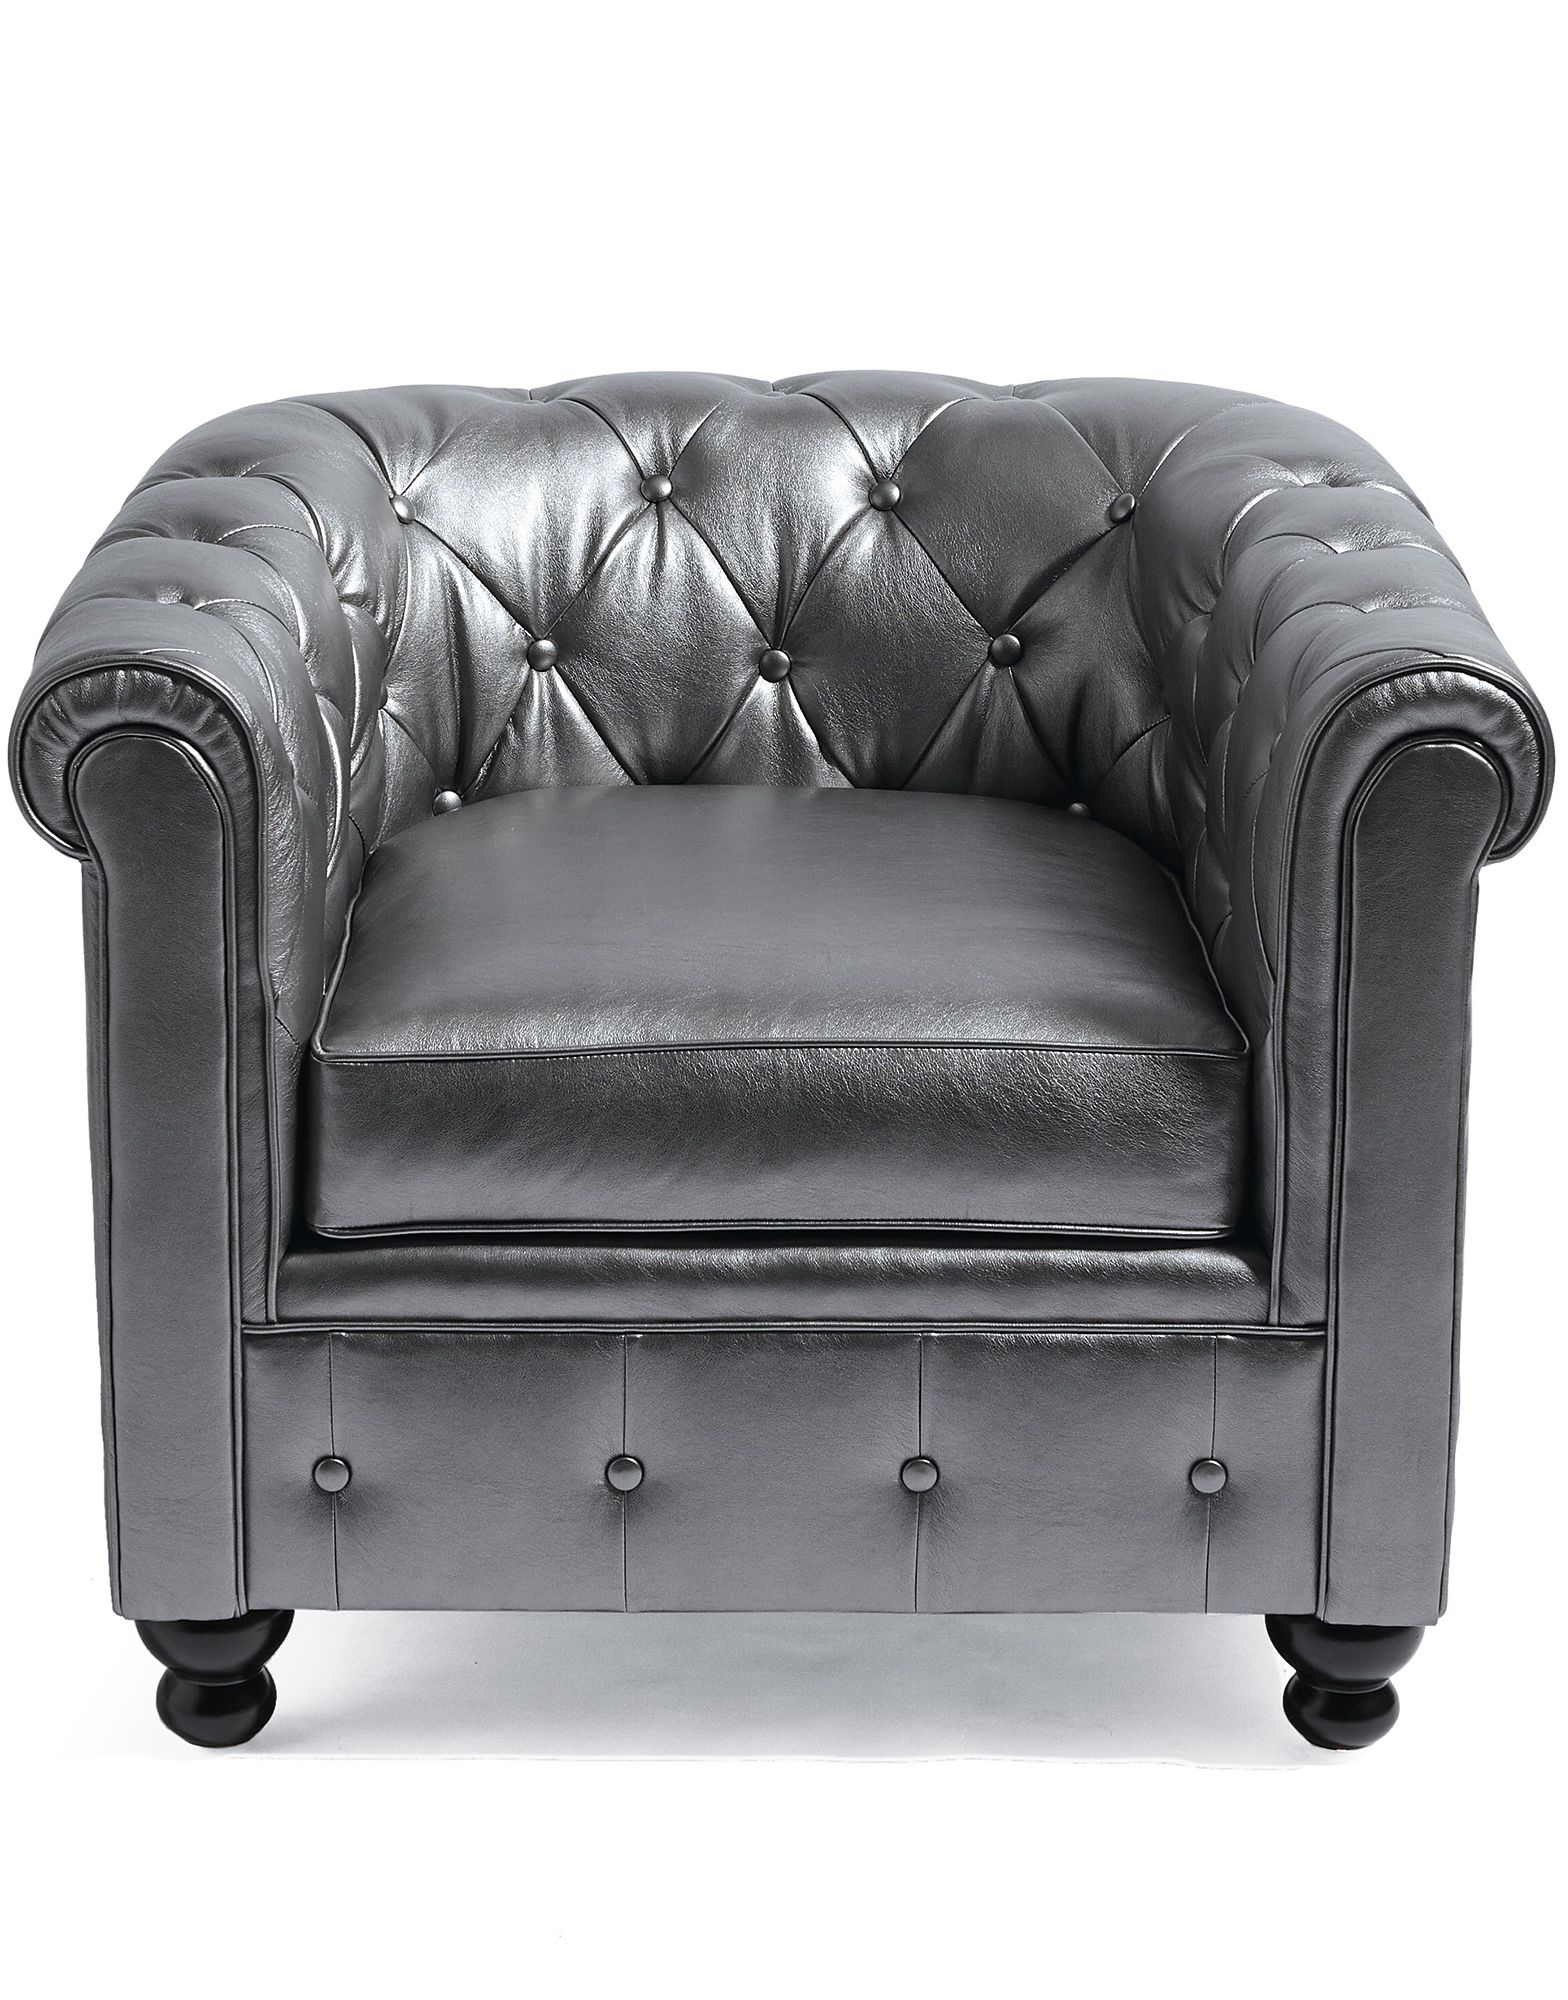 Harrison Chair In Pewter! | Interior Design | Pinterest | Pewter In Grandin Leather Sofa Chairs (Image 13 of 20)